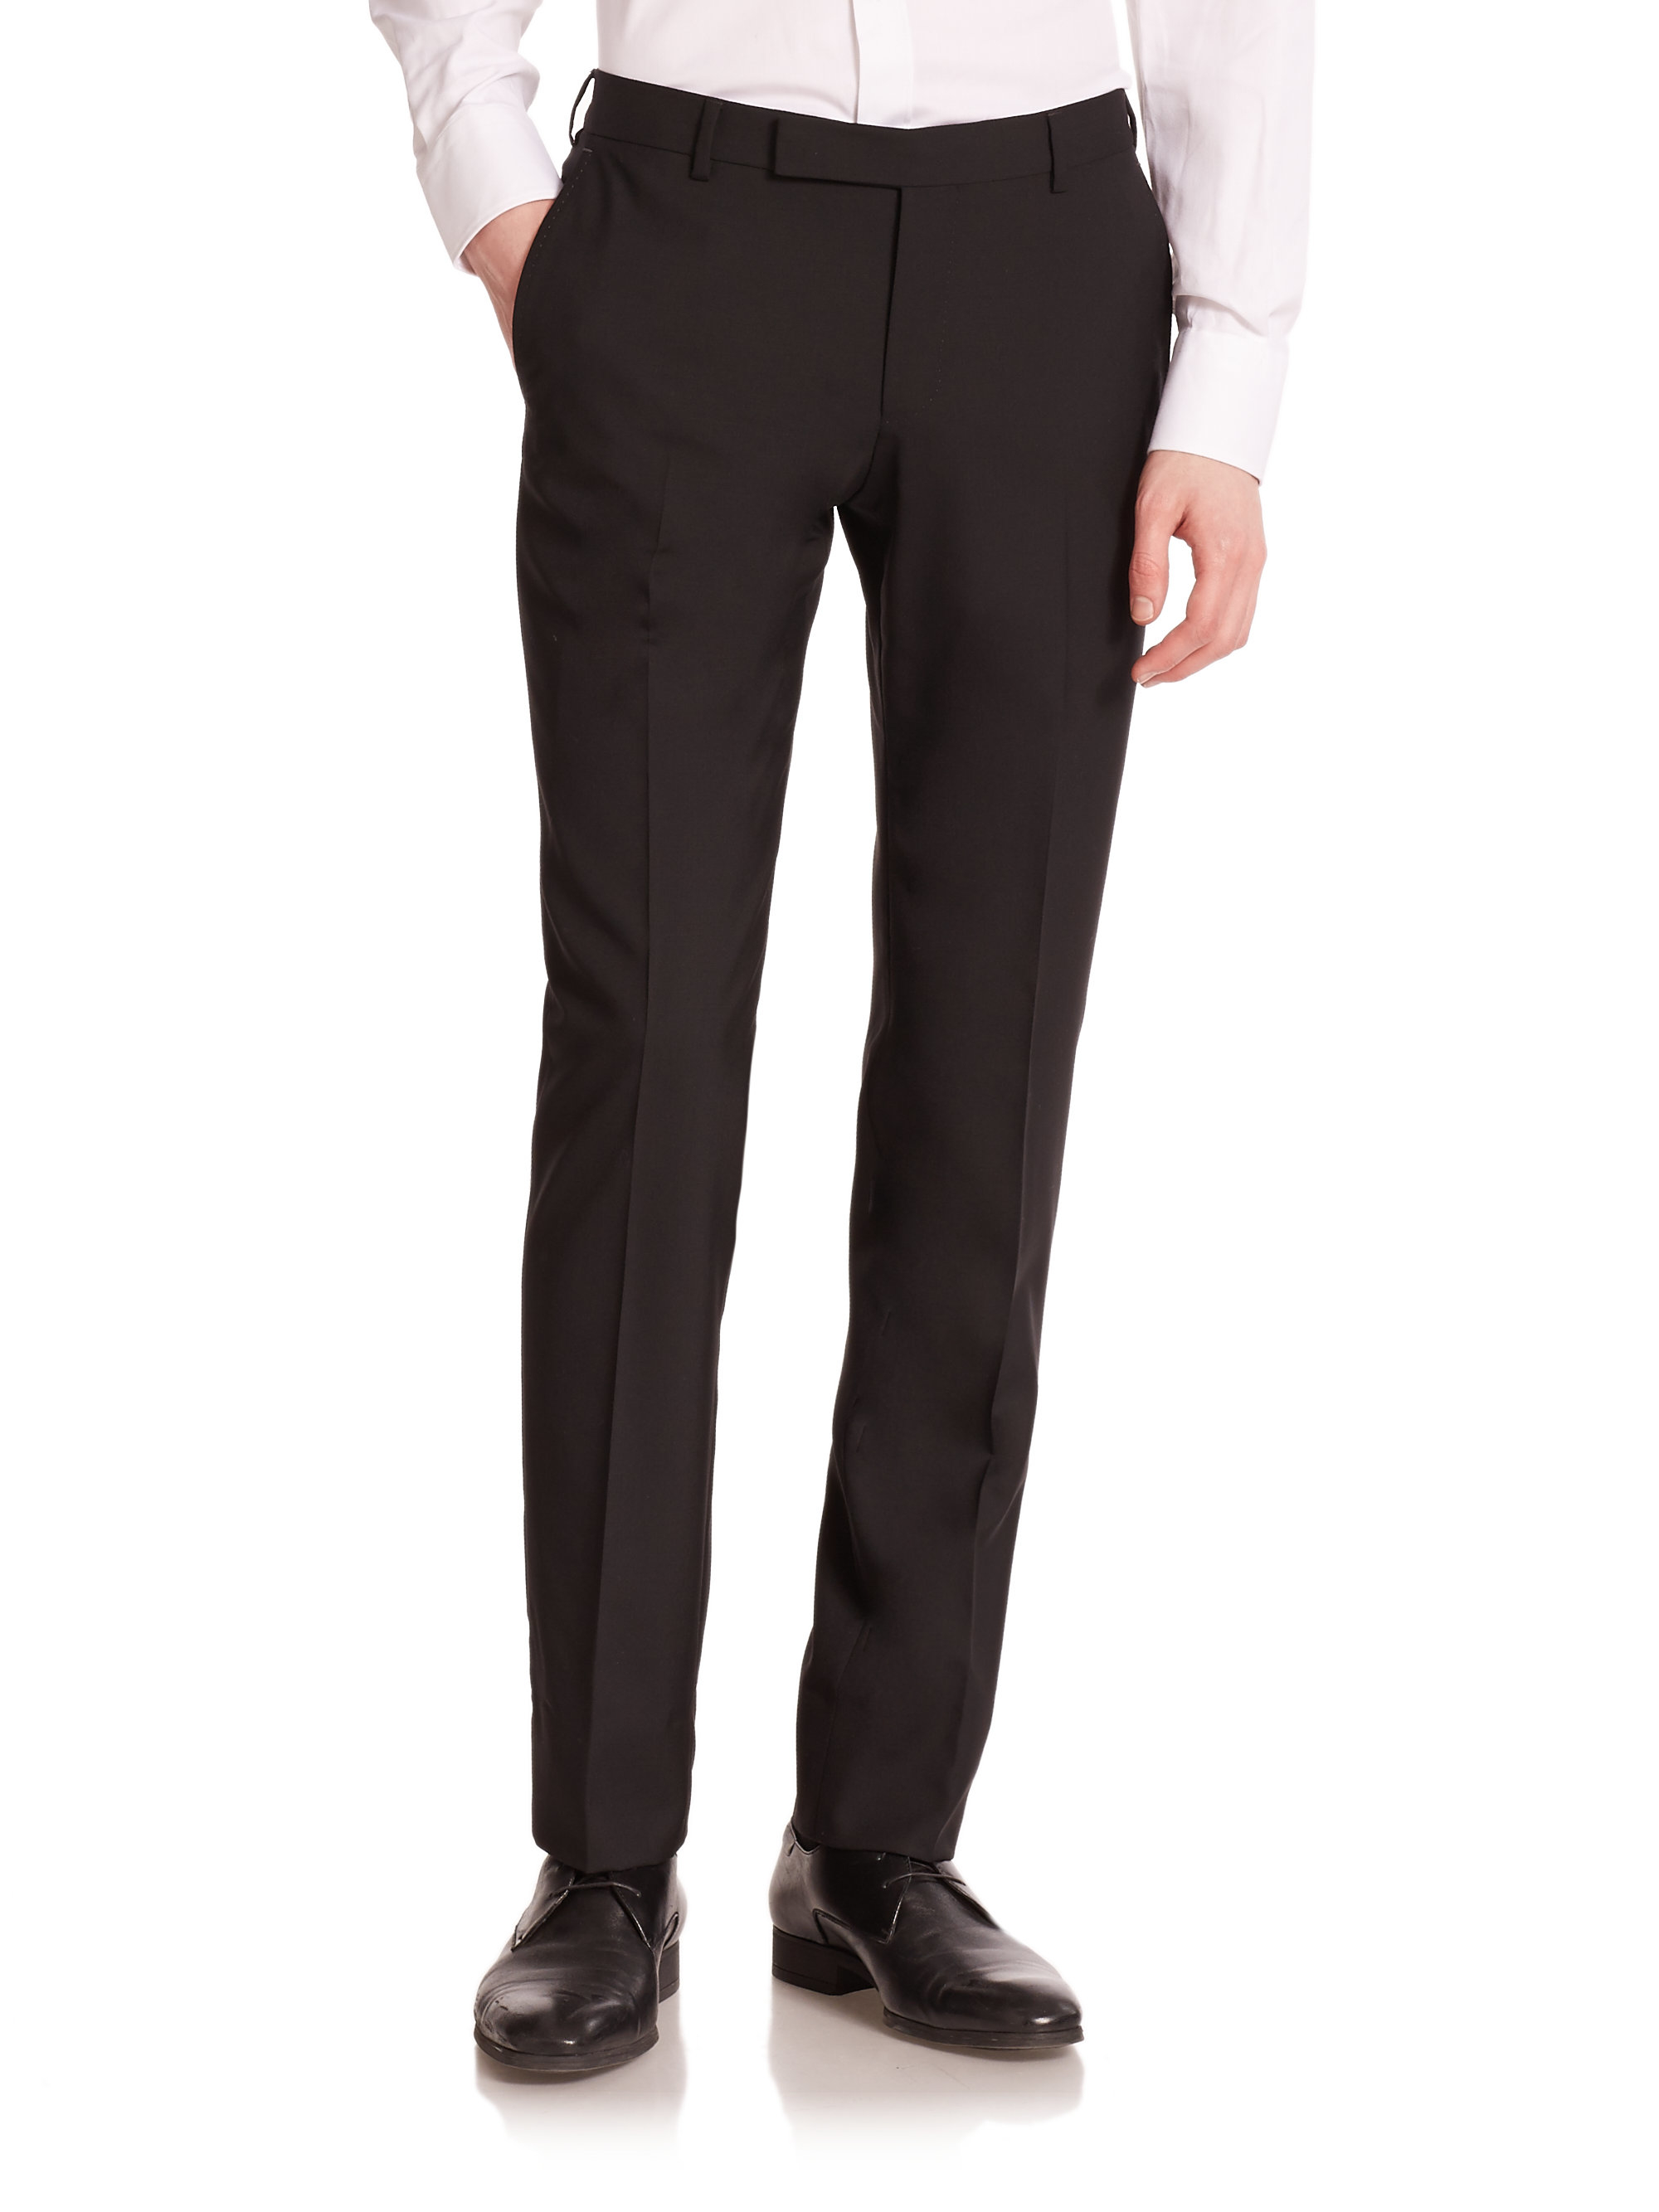 Shop Men's Pants: Dress Pants, Chinos, Khakis, pants and more at Macy's! Macy's Presents: The Edit- A curated mix of fashion and inspiration Check It Out. Free Shipping with $75 purchase + Free Store Pickup. Contiguous US. Calvin Klein Black Solid Modern Fit Tuxedo Pant.